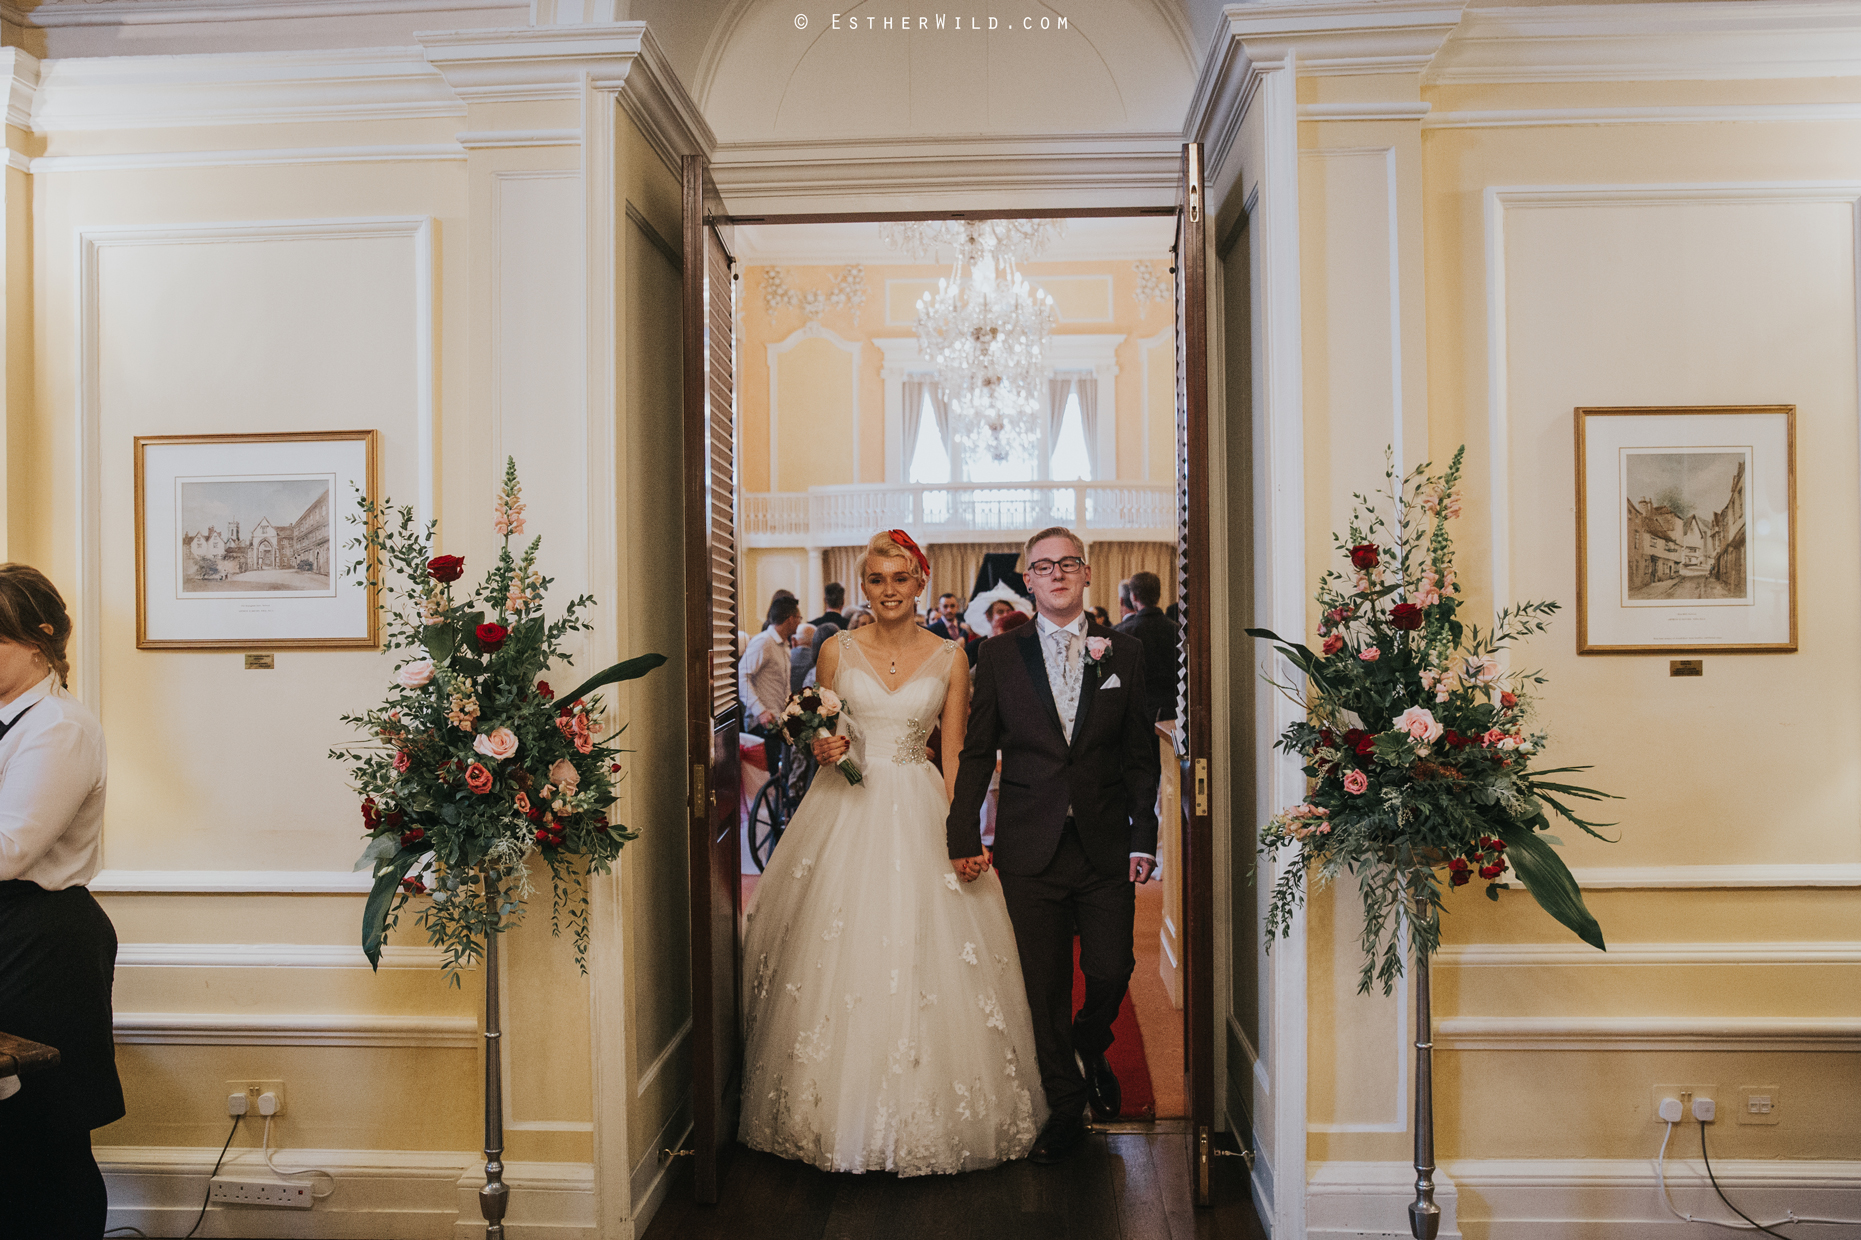 Norwich_Assembly_House_Wedding_Esther_Wild_Photographer_IMG_3994.jpg